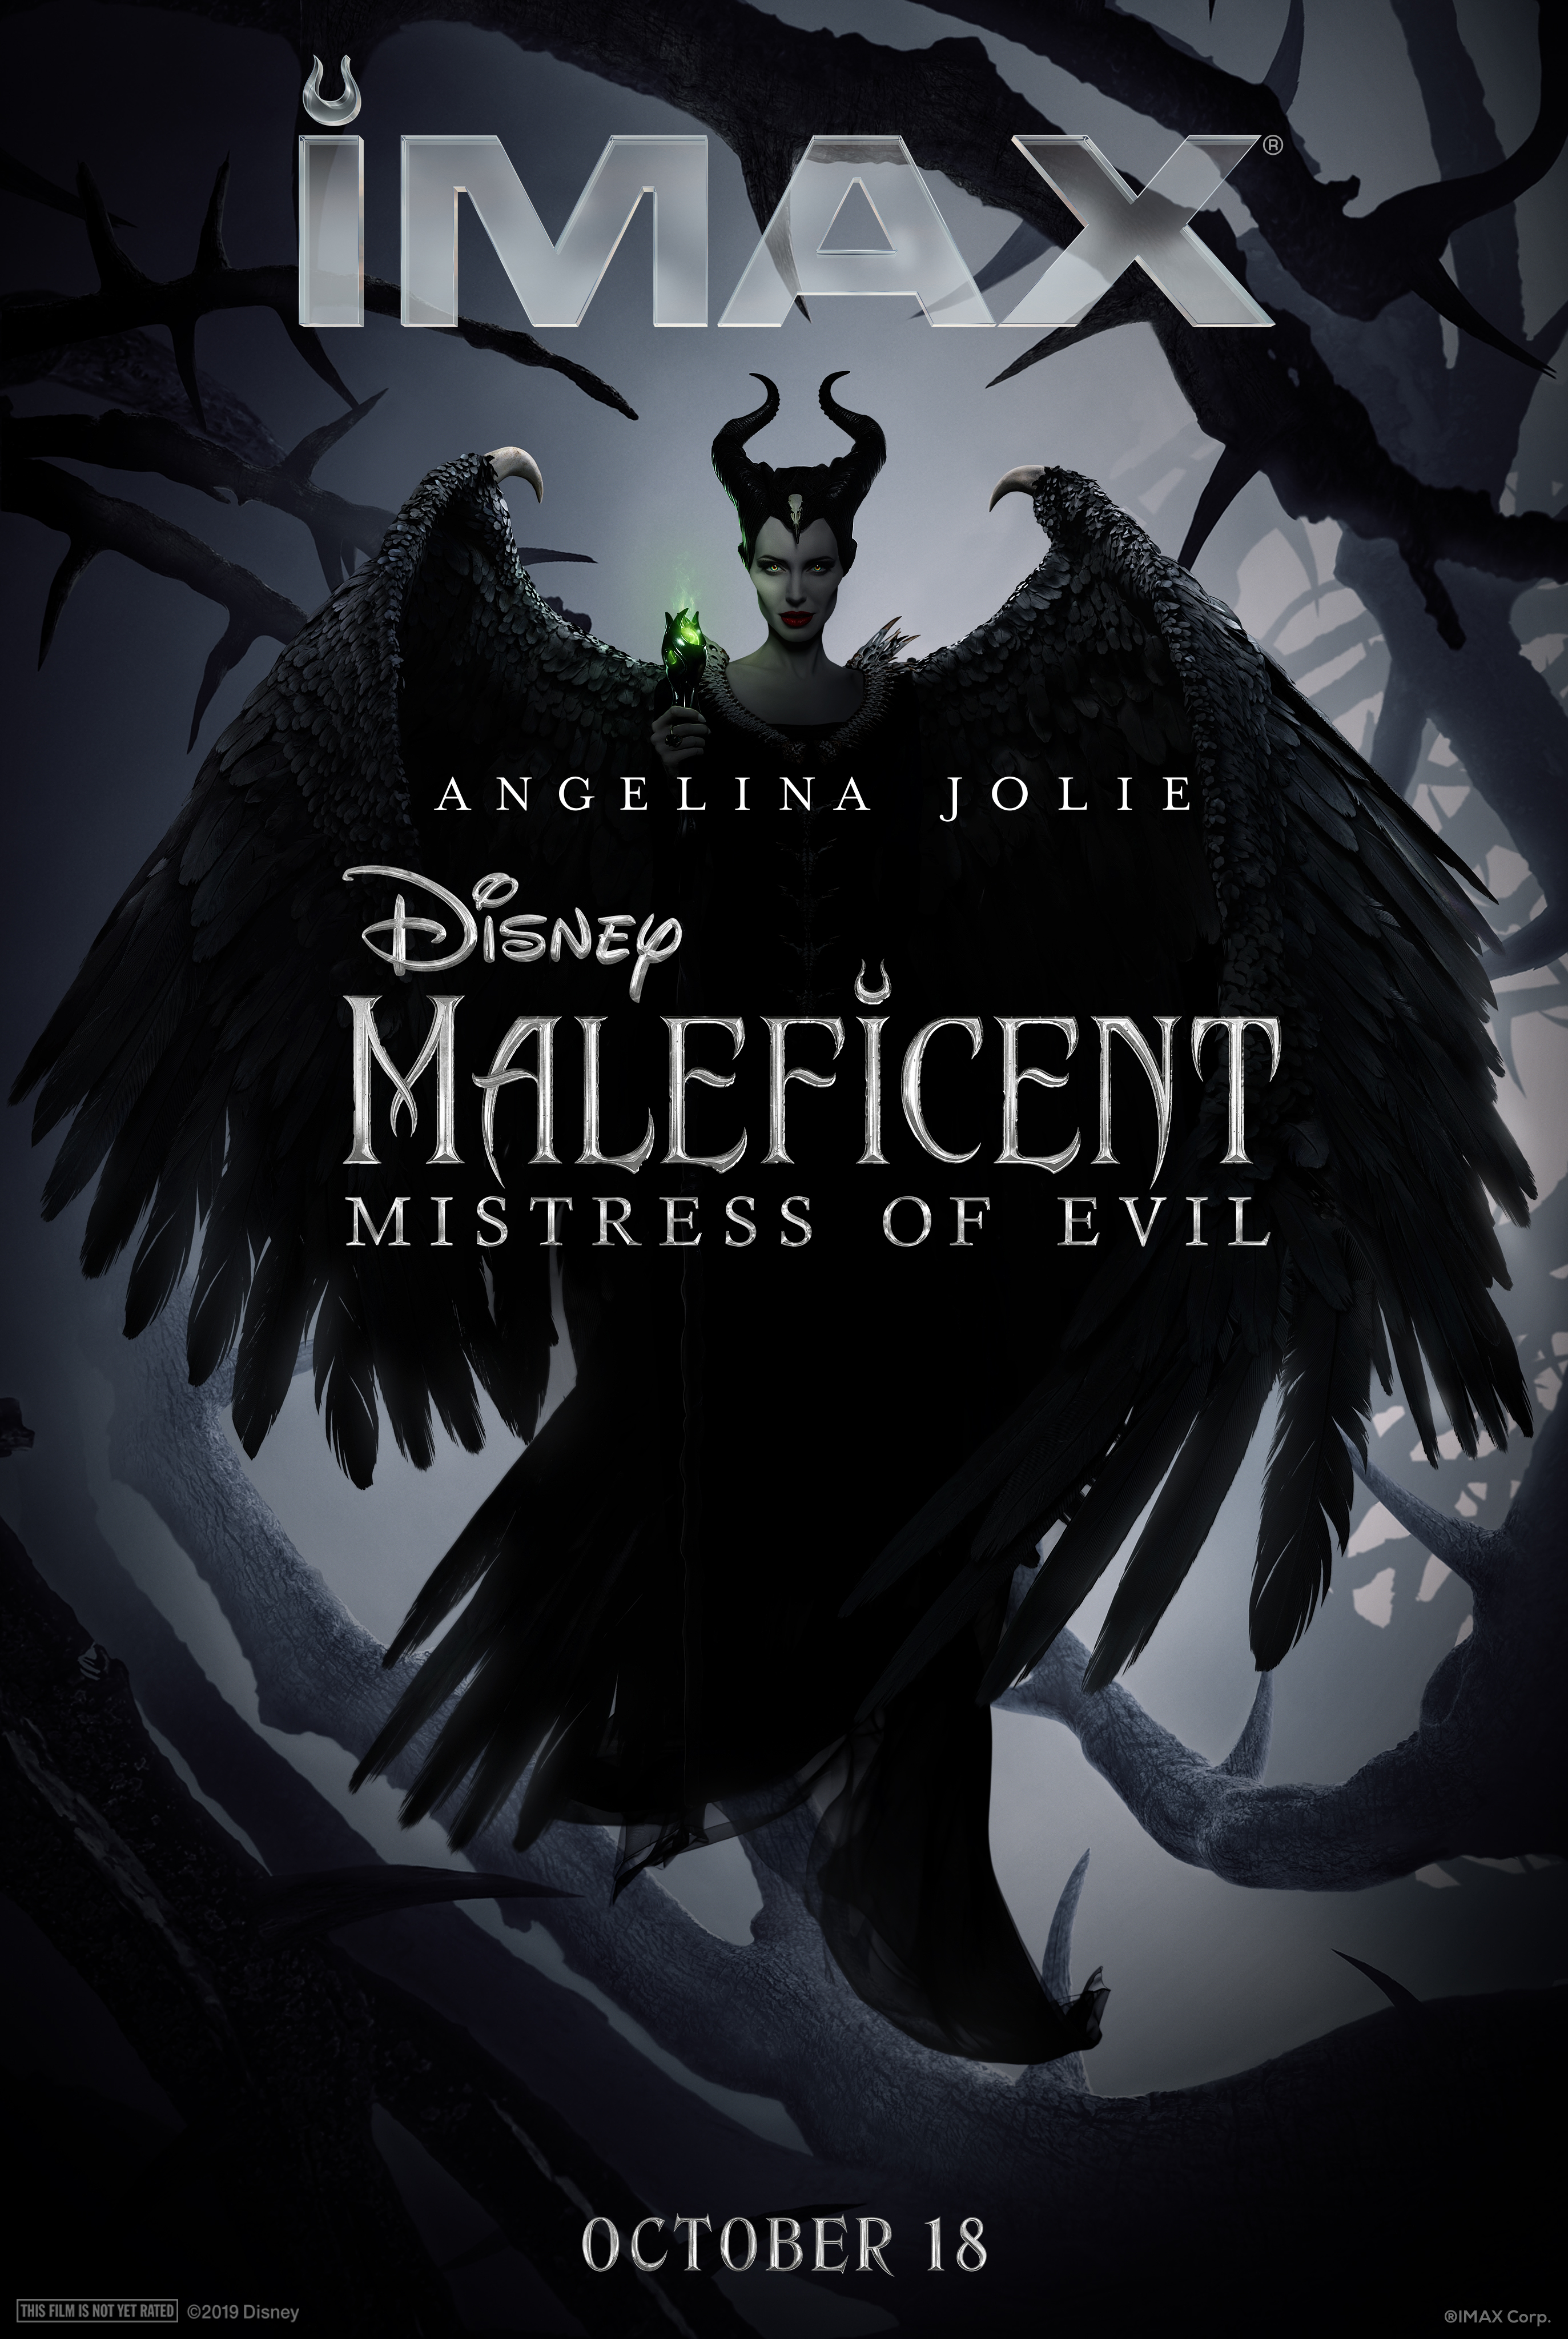 Maleficent : Mistress of Evil IMAX? Exclusive Artwork